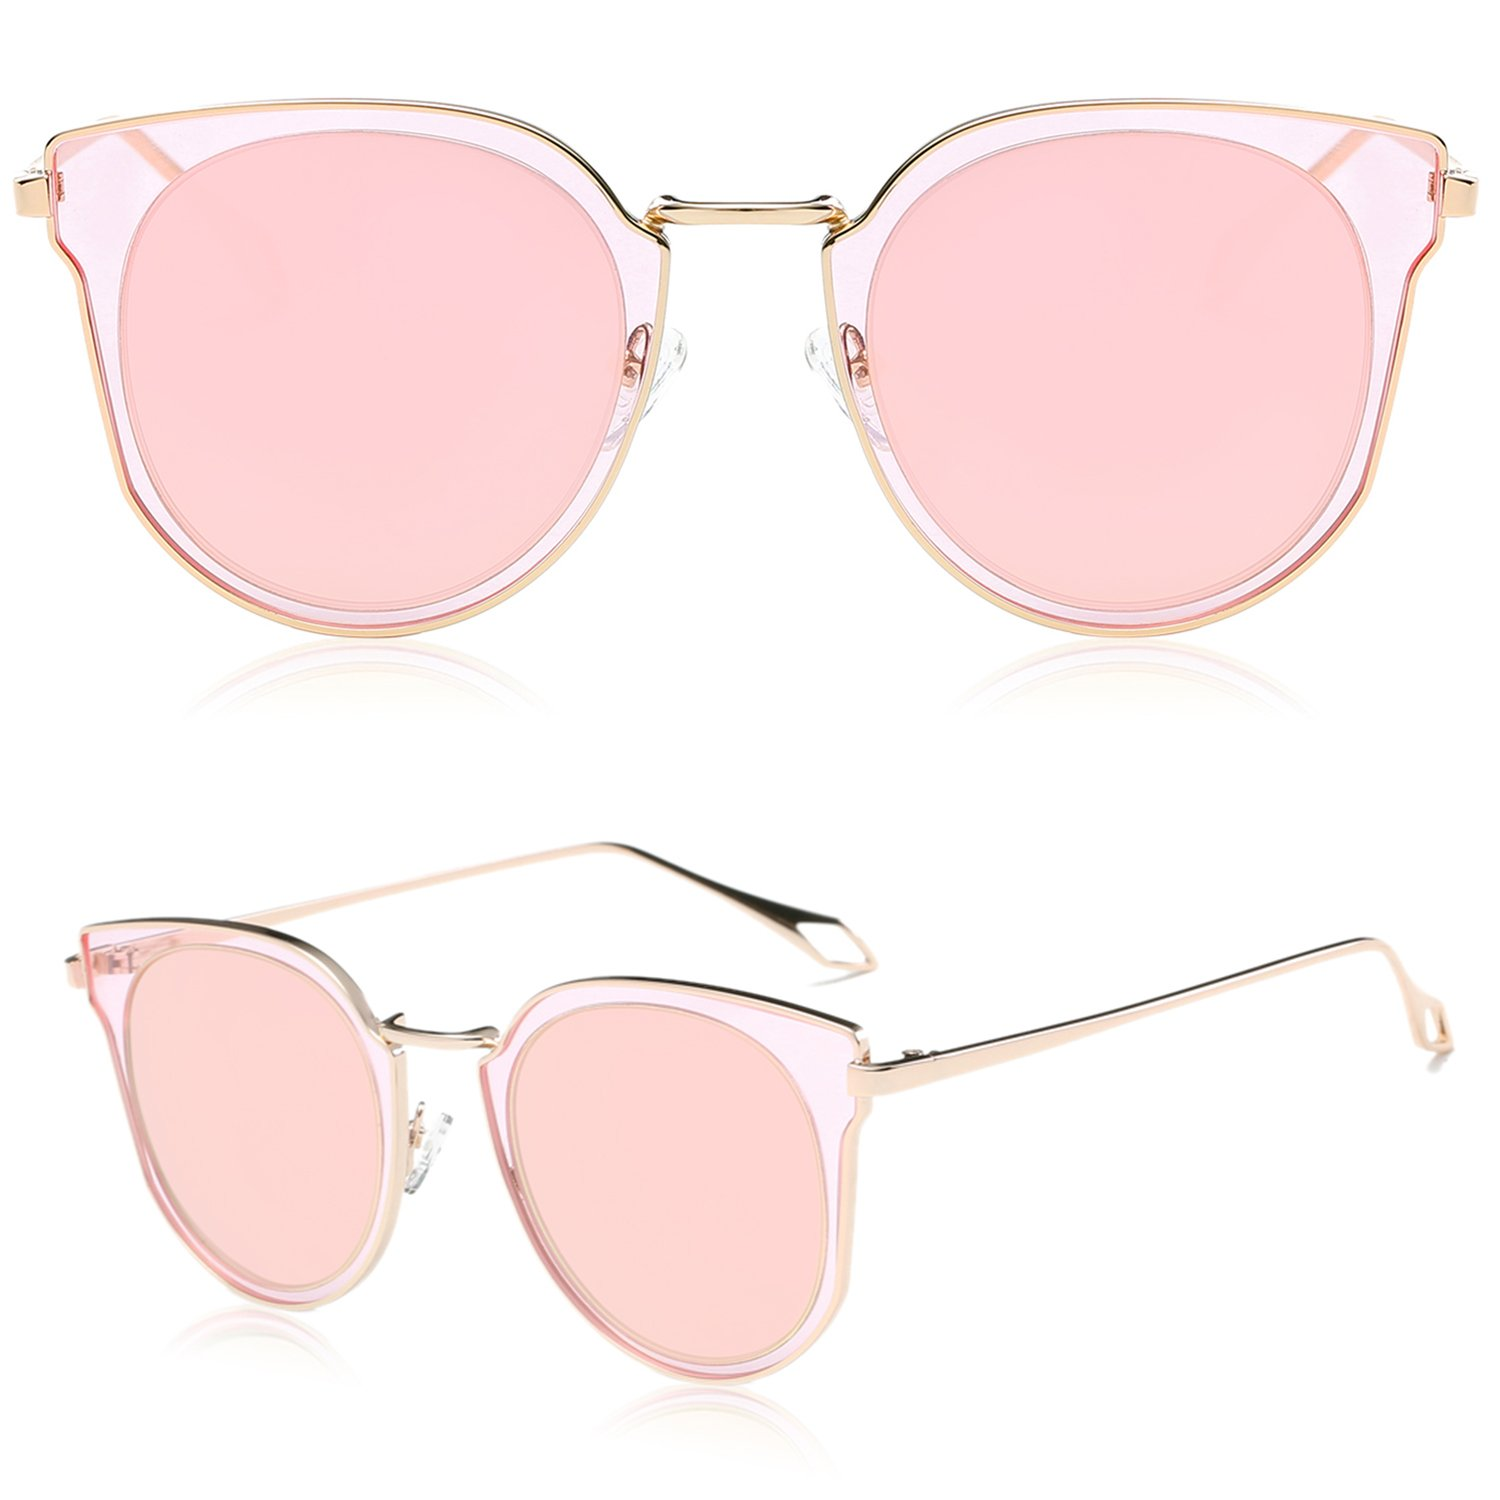 6c9abefc9b0 SOJOS Polarized UV Mirrored Lens Oversize Metal with Rose Gold Frame Unisex  Sunglasses  Amazon.in  Clothing   Accessories